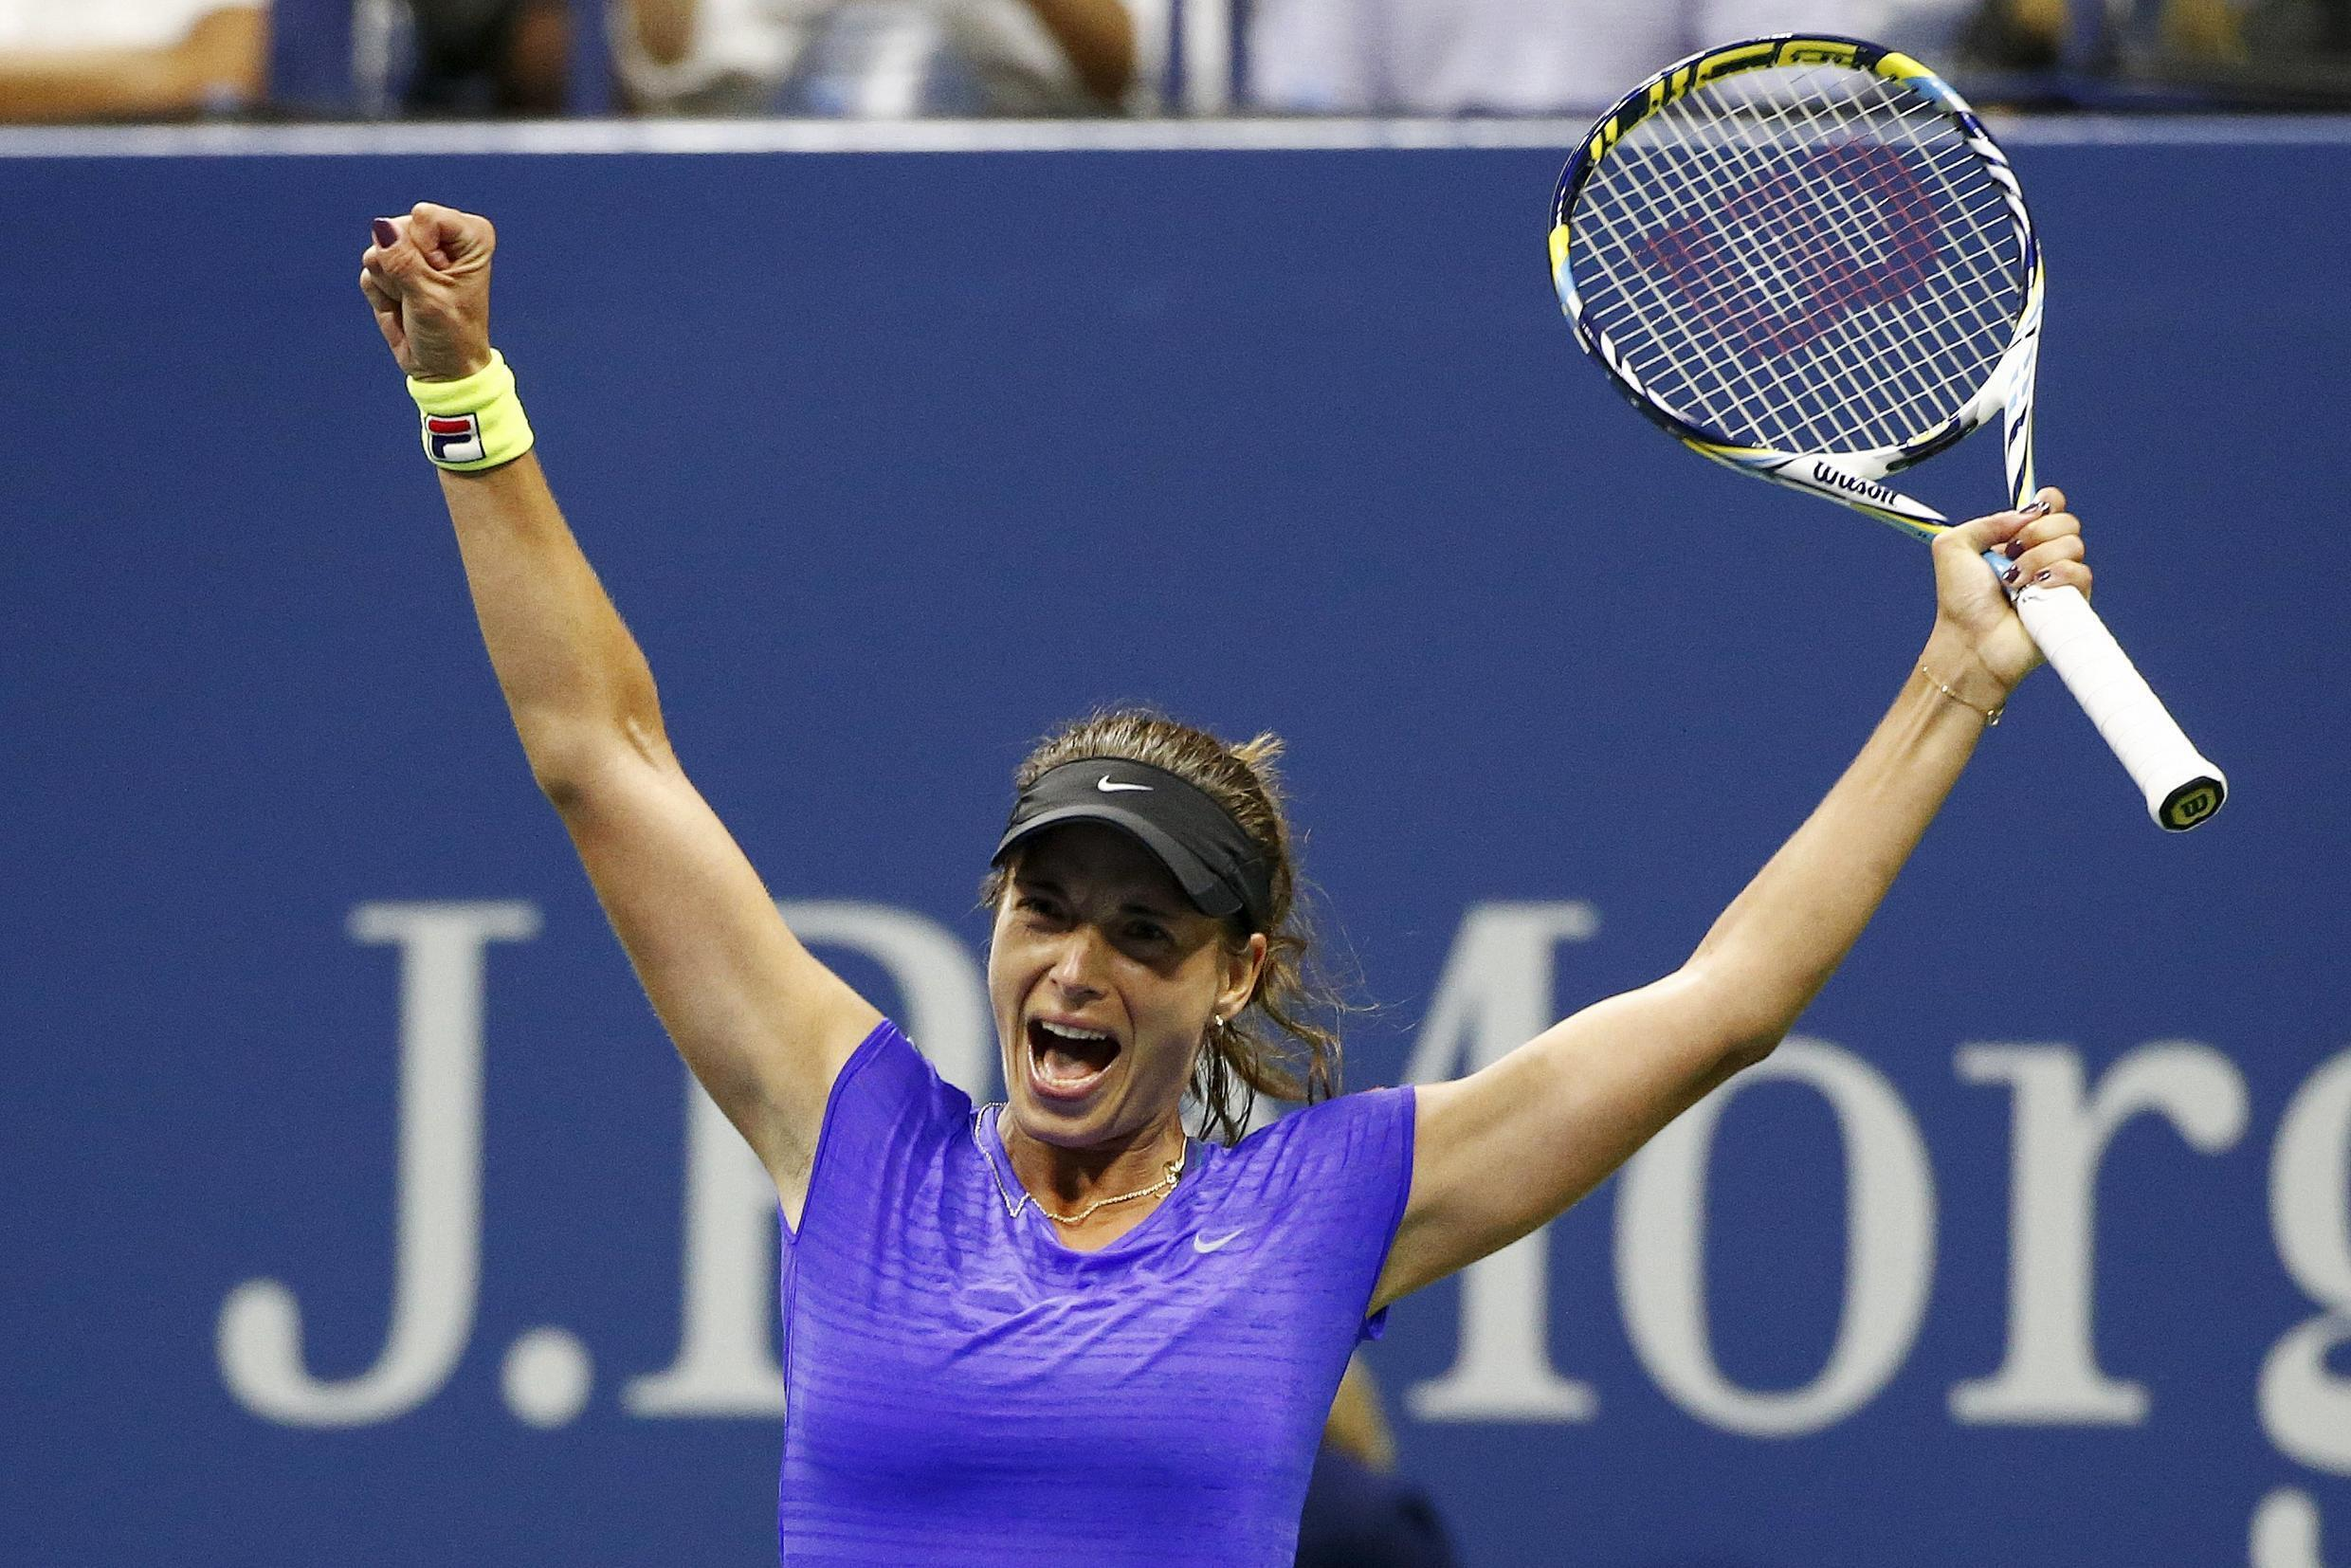 Petra Cetkovska of Czech Republic celebrates her win over Caroline Wozniacki of Denmark during their second round match at the US Open.